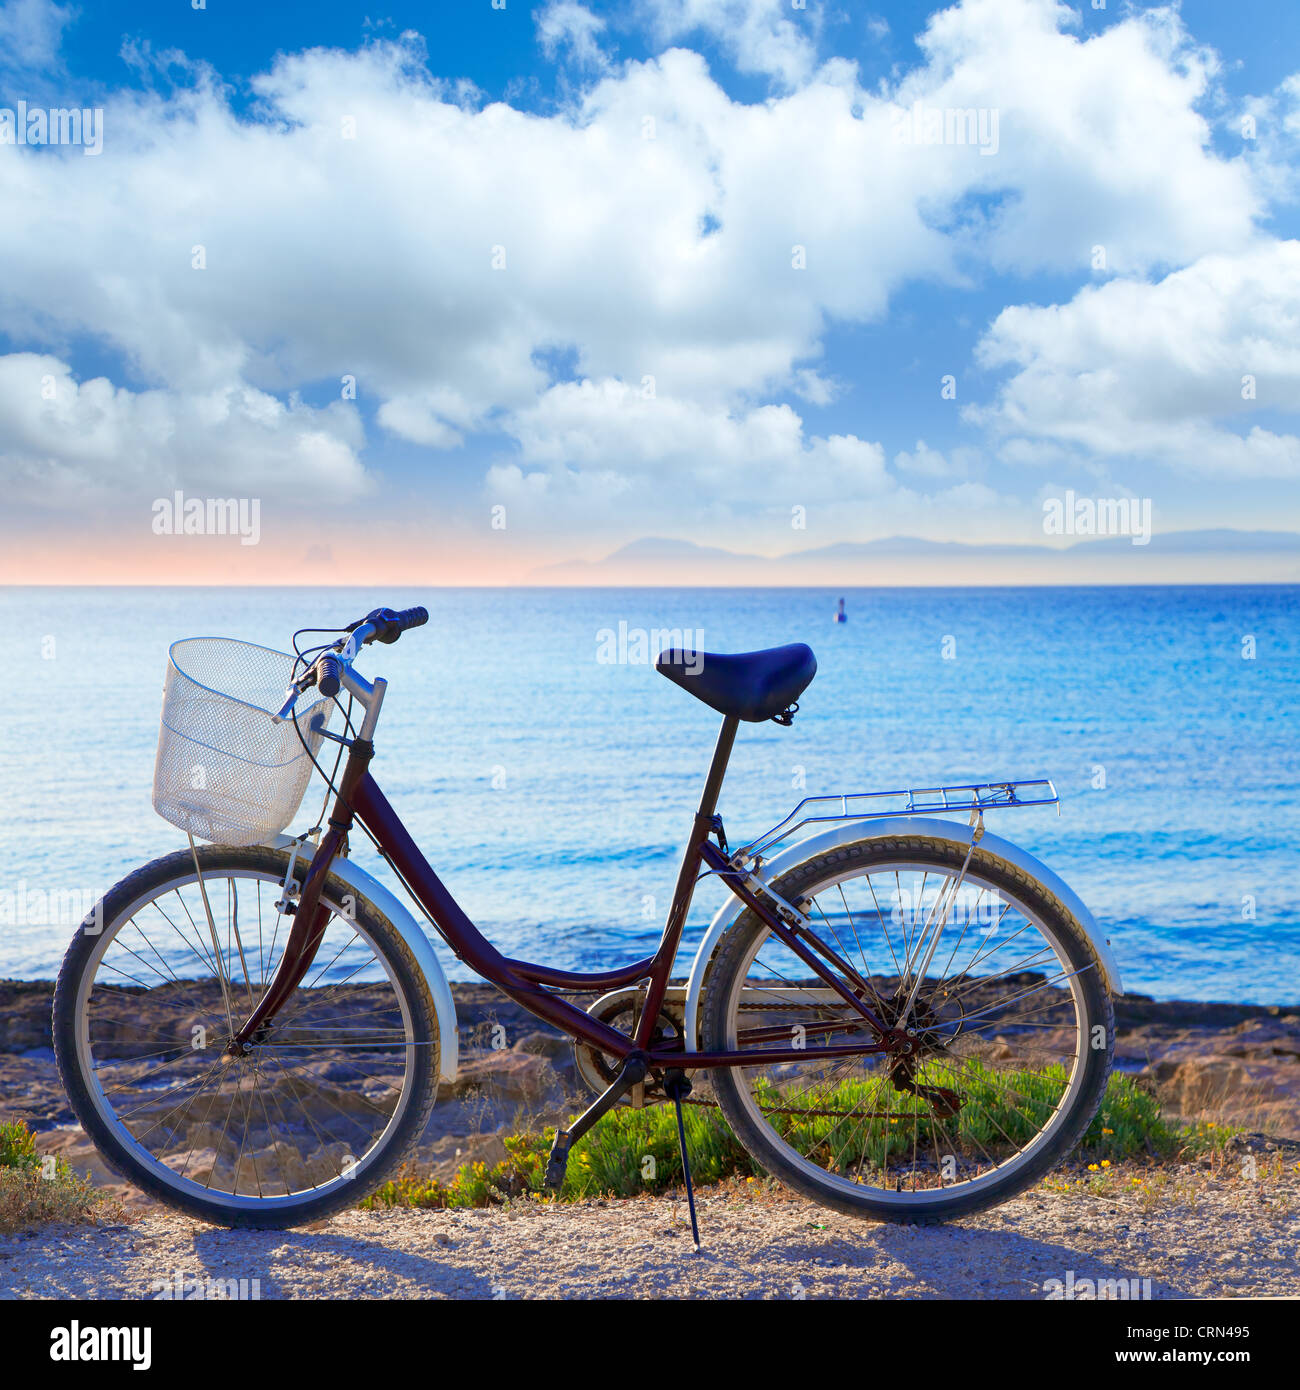 Bicycle in formentera beach on Balearic islands with Ibiza sunset background - Stock Image